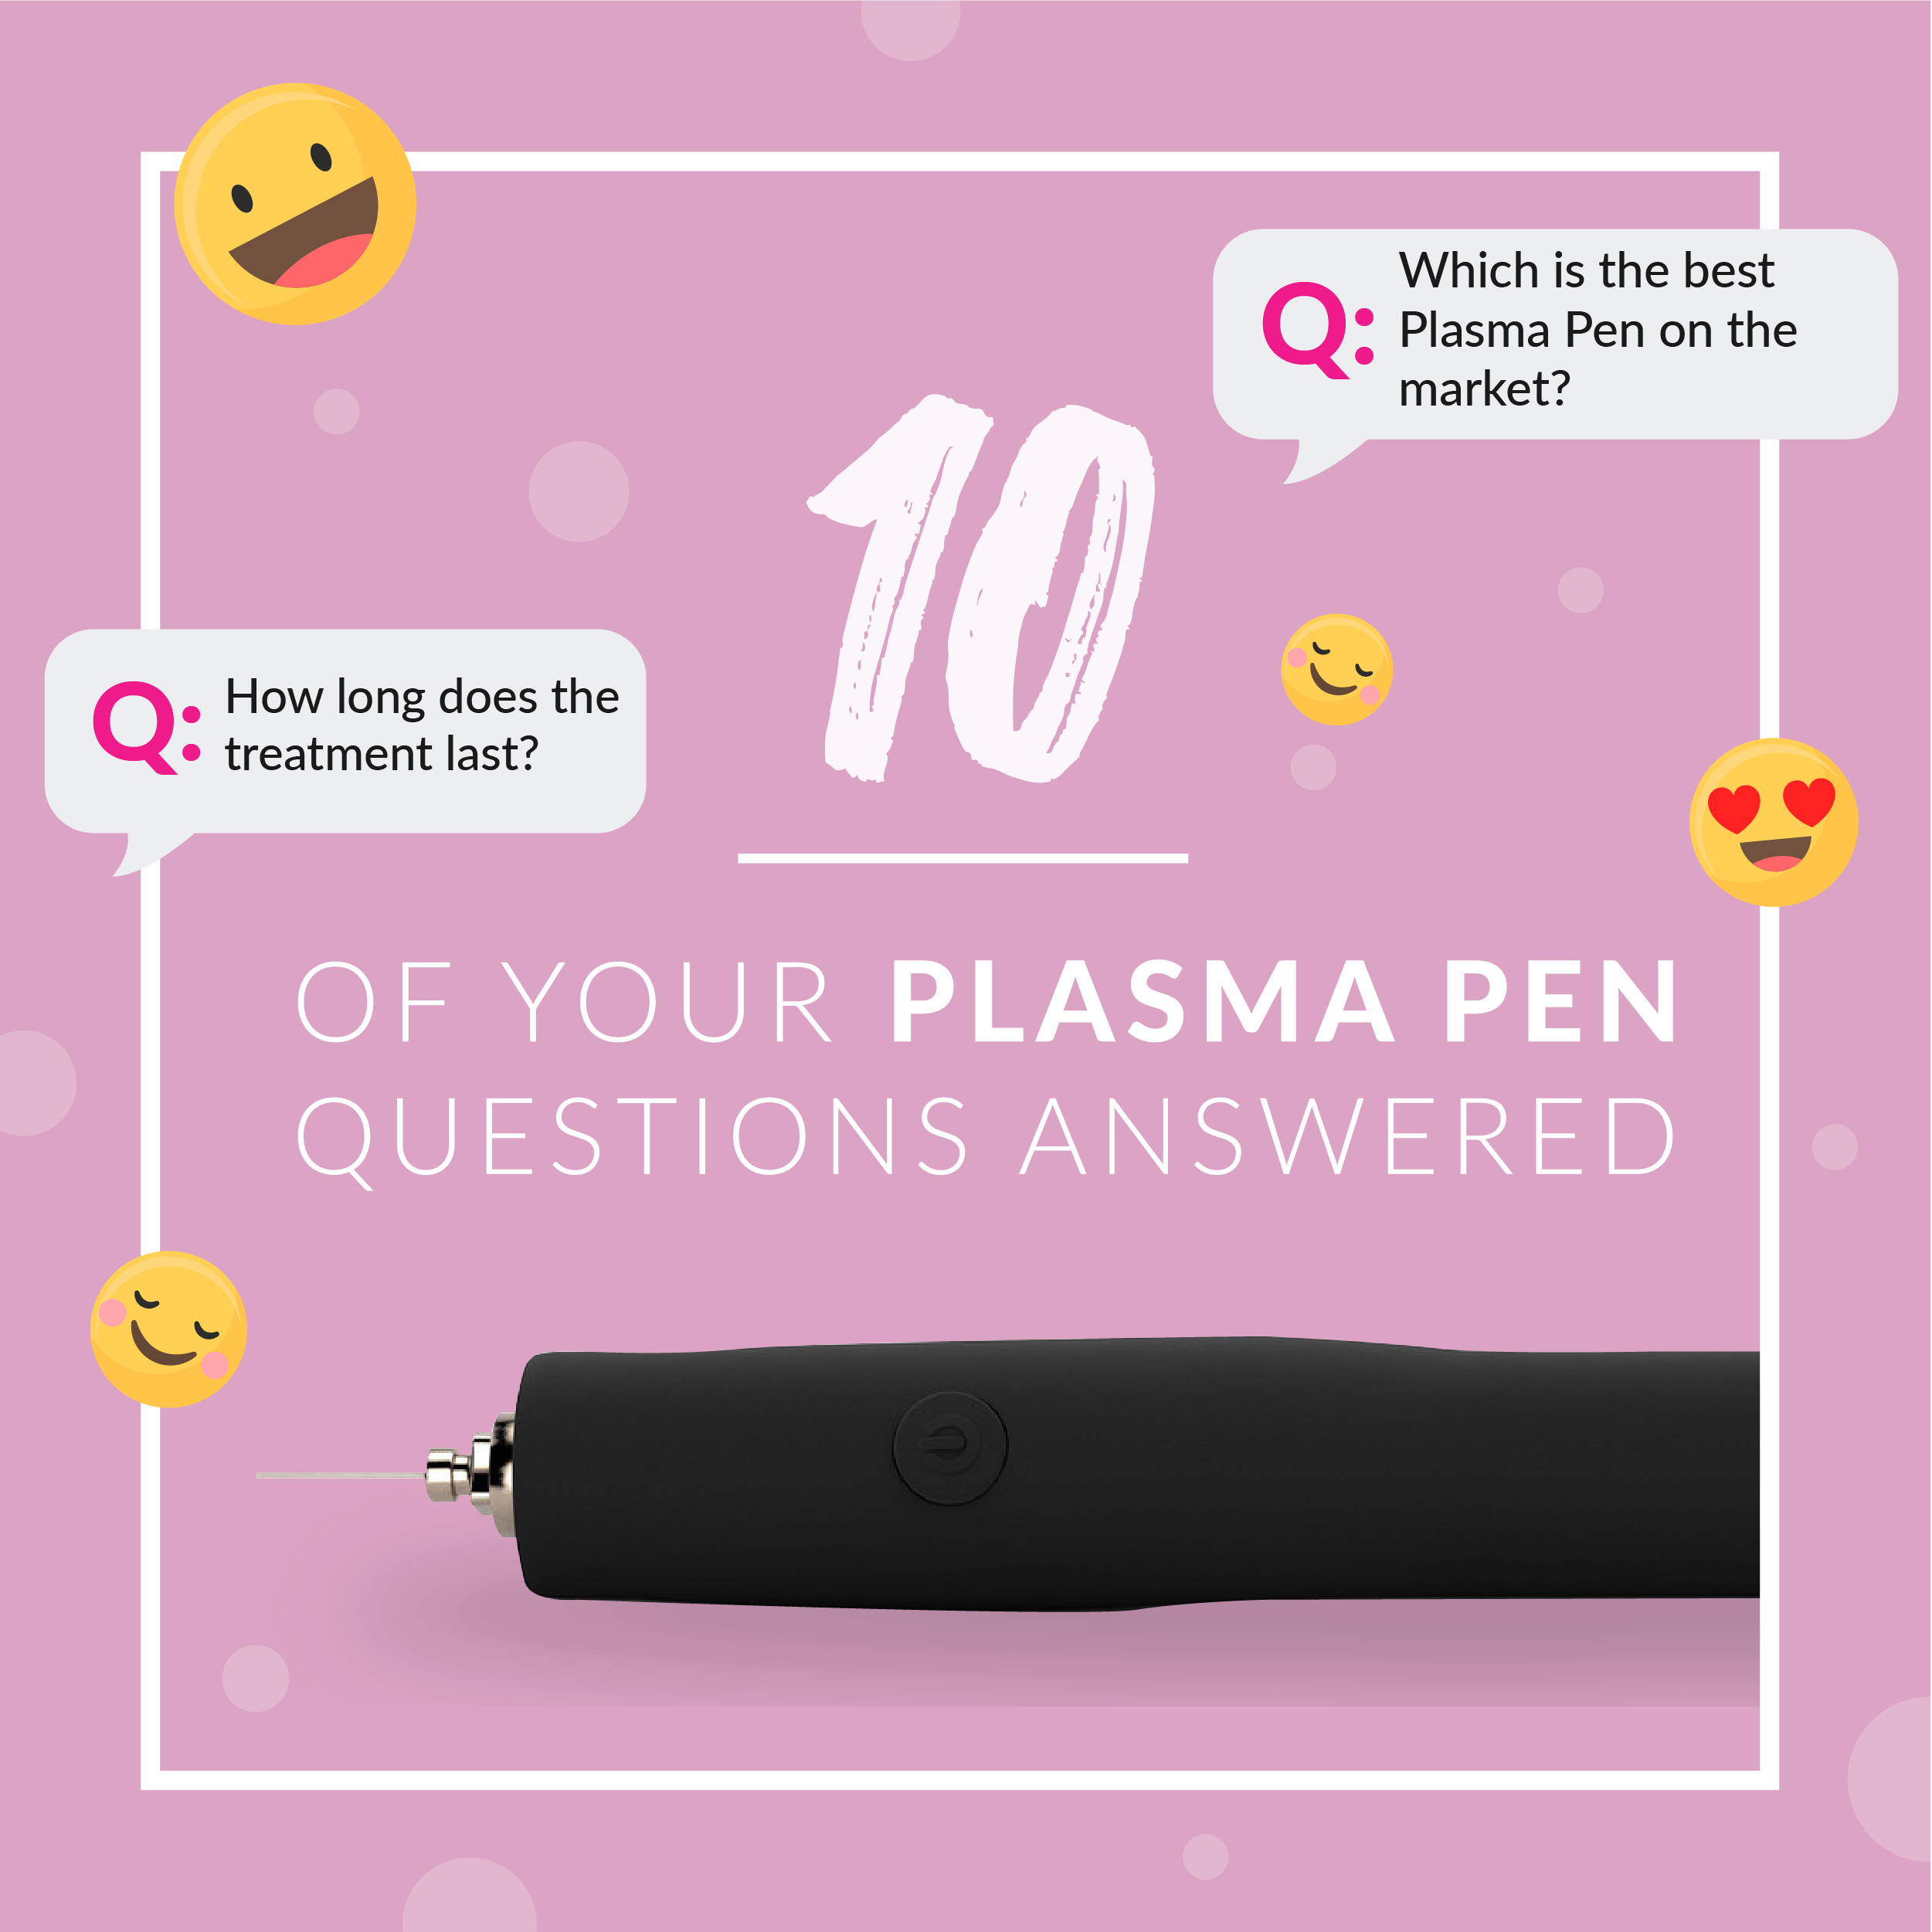 Artboard 25 - 10 of your Plasma Pen questions answered